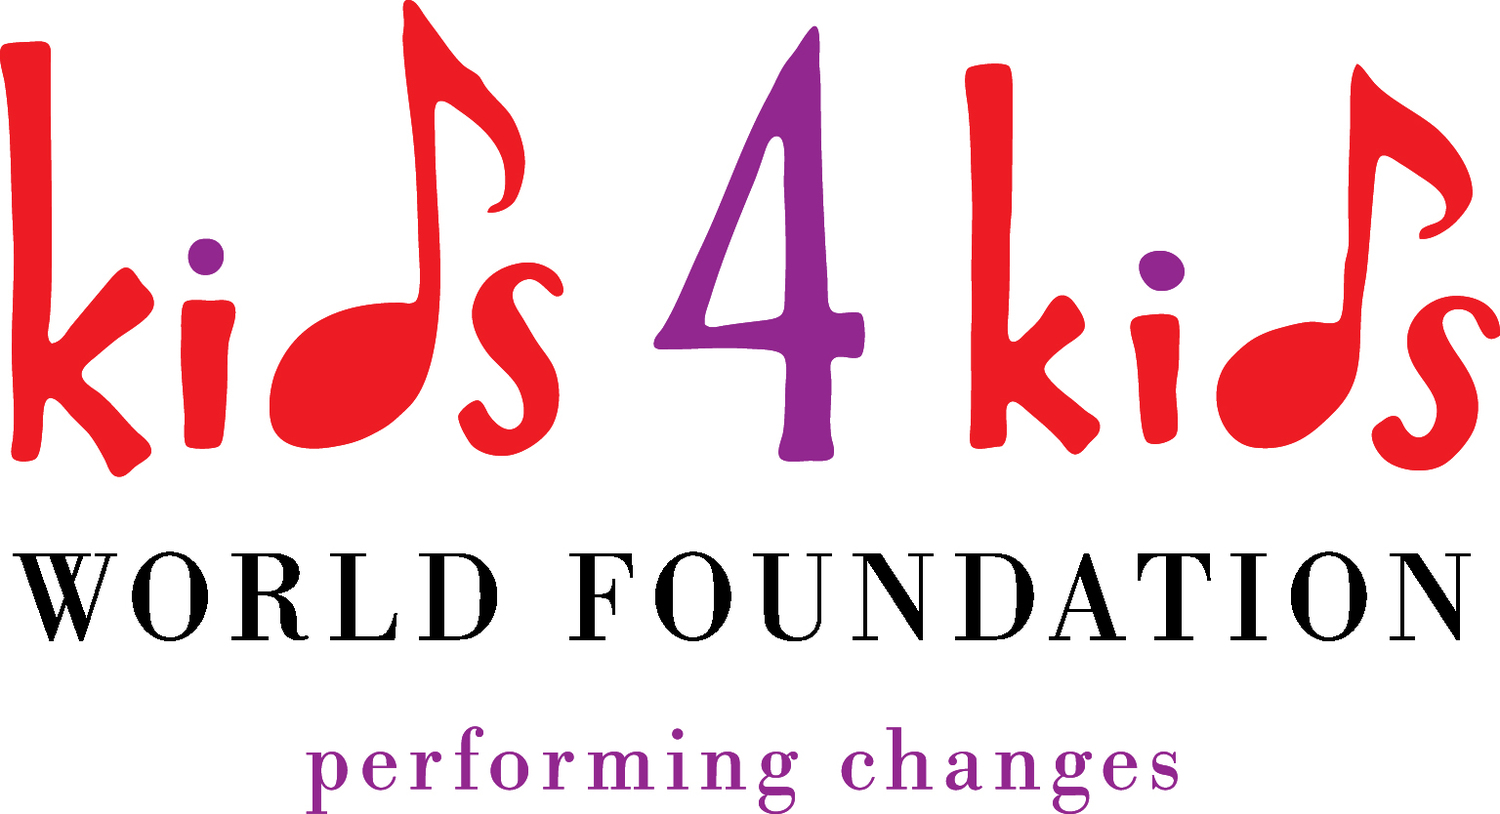 Kinder helfen Kindern | Stiftung kids4kids World Foundation